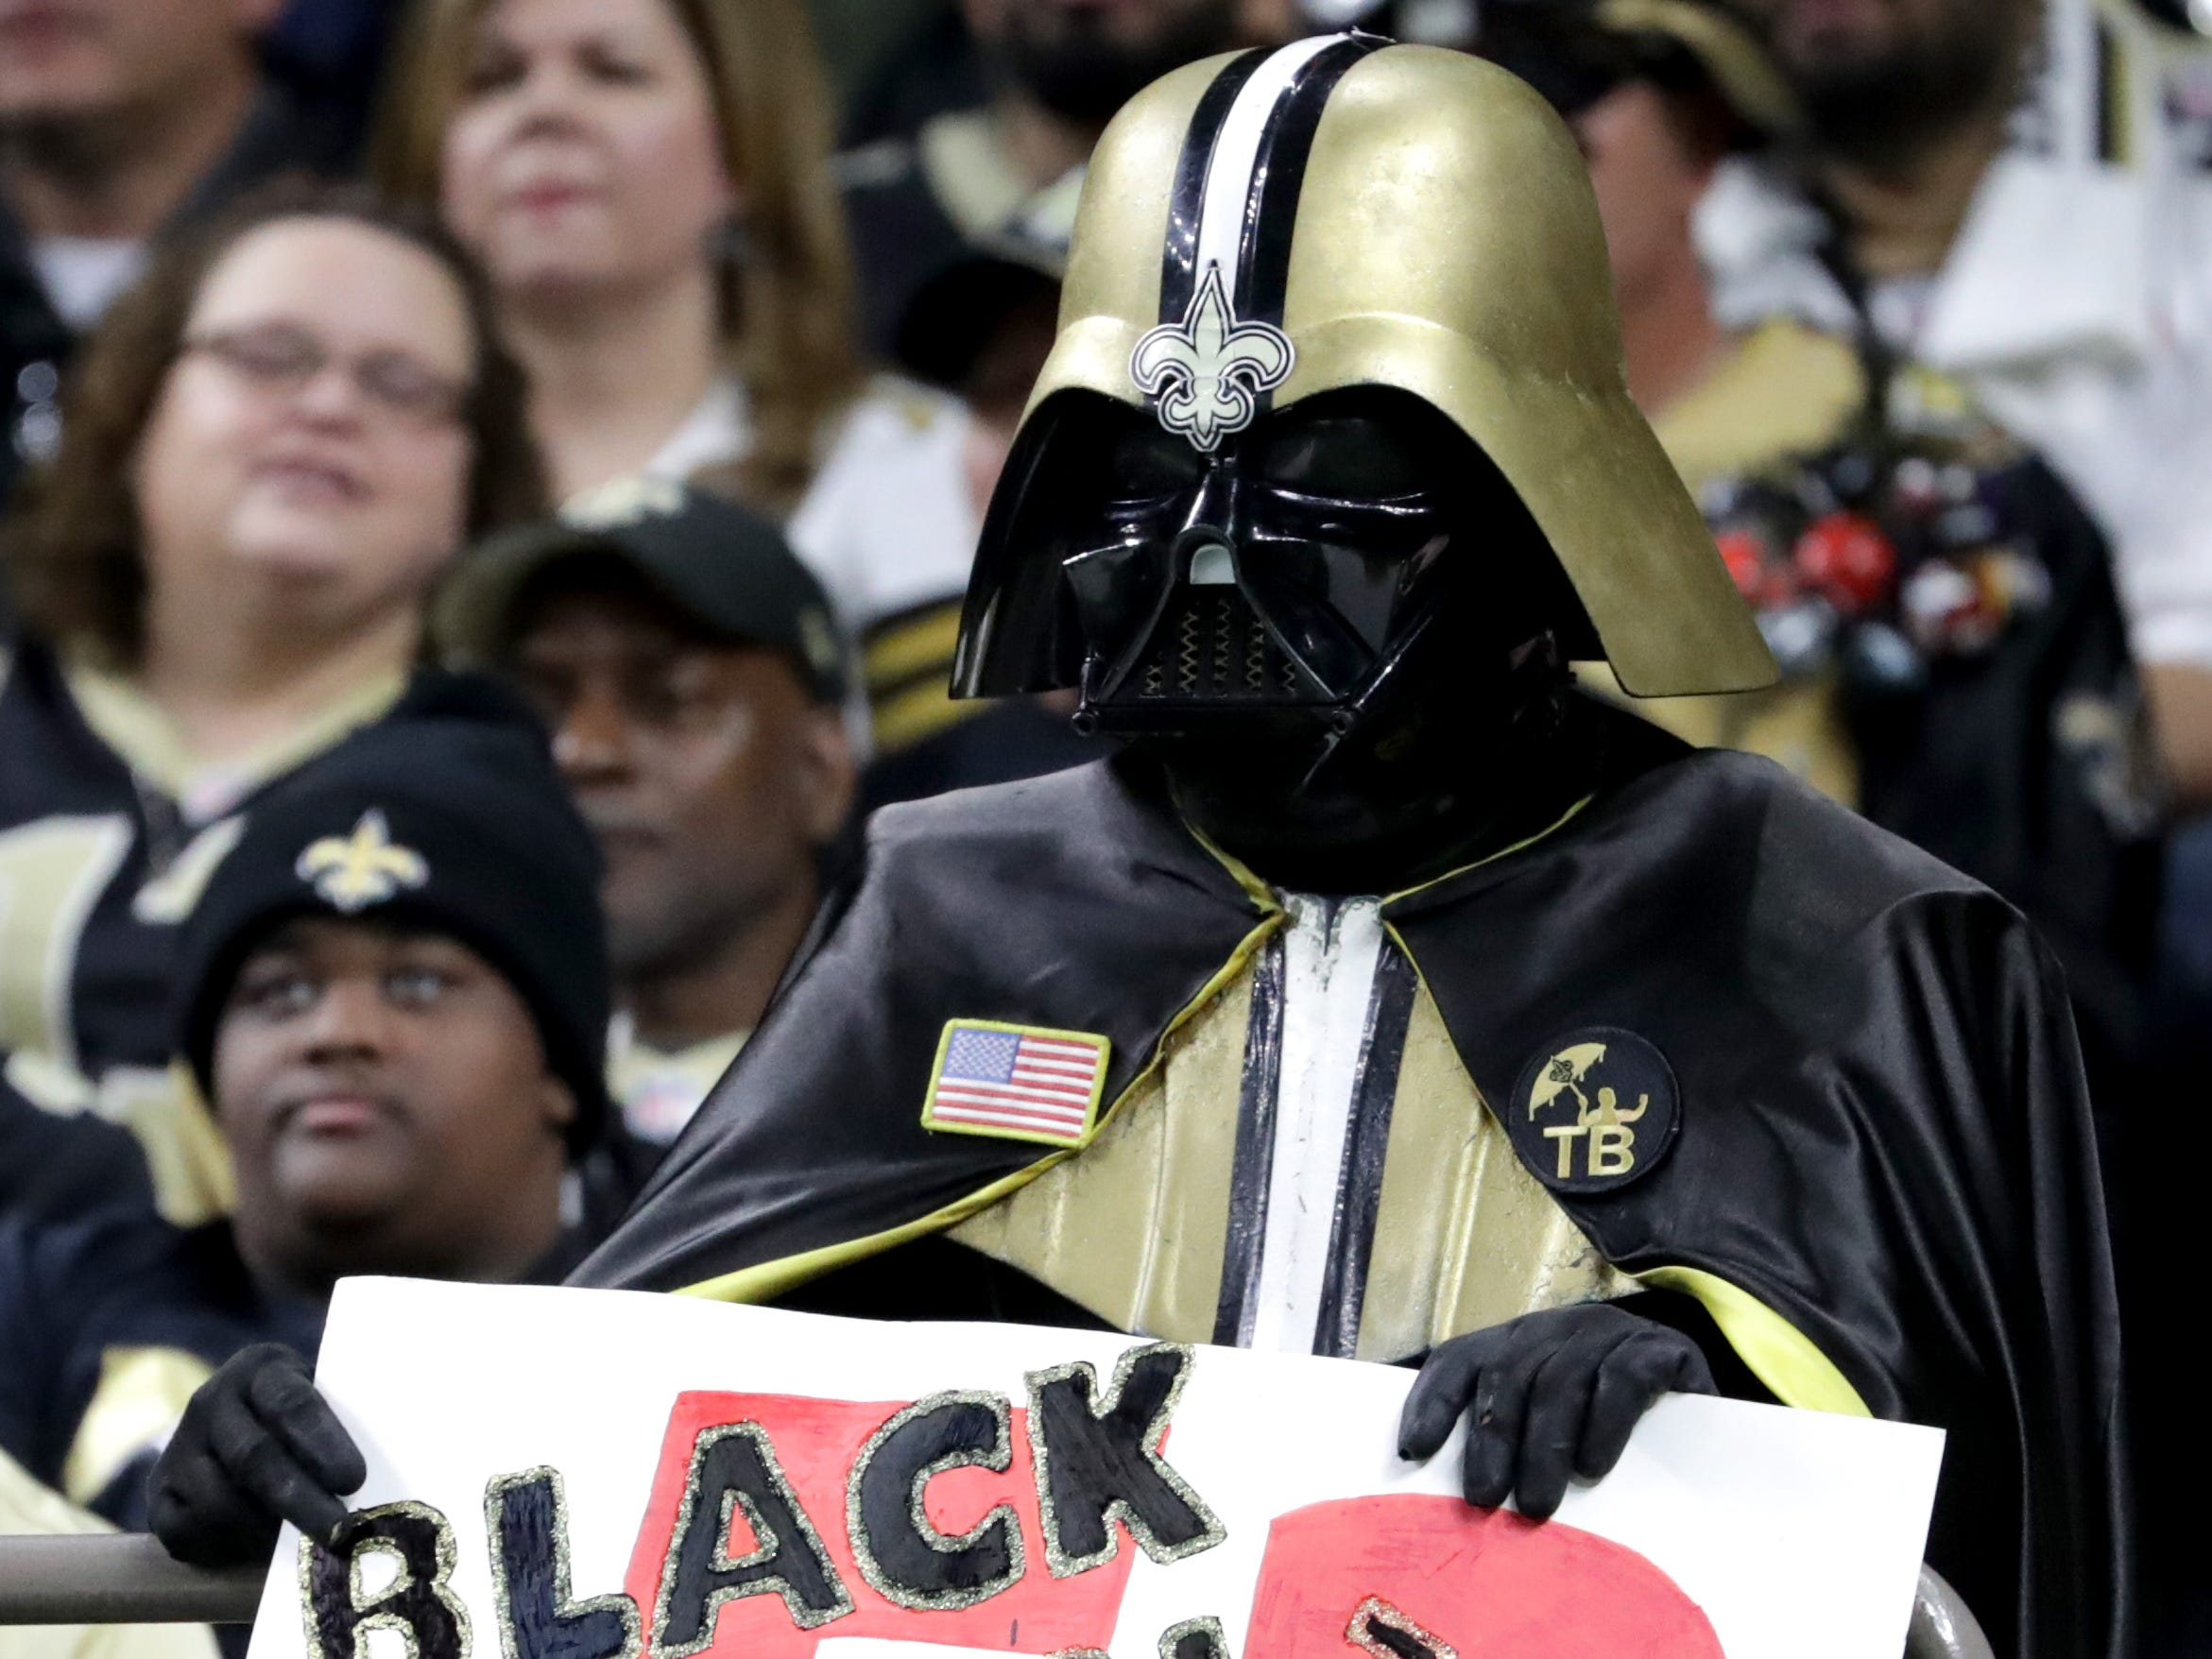 A New Orleans Saints fan reacts during the NFC Championship at Mercedes-Benz Superdome.